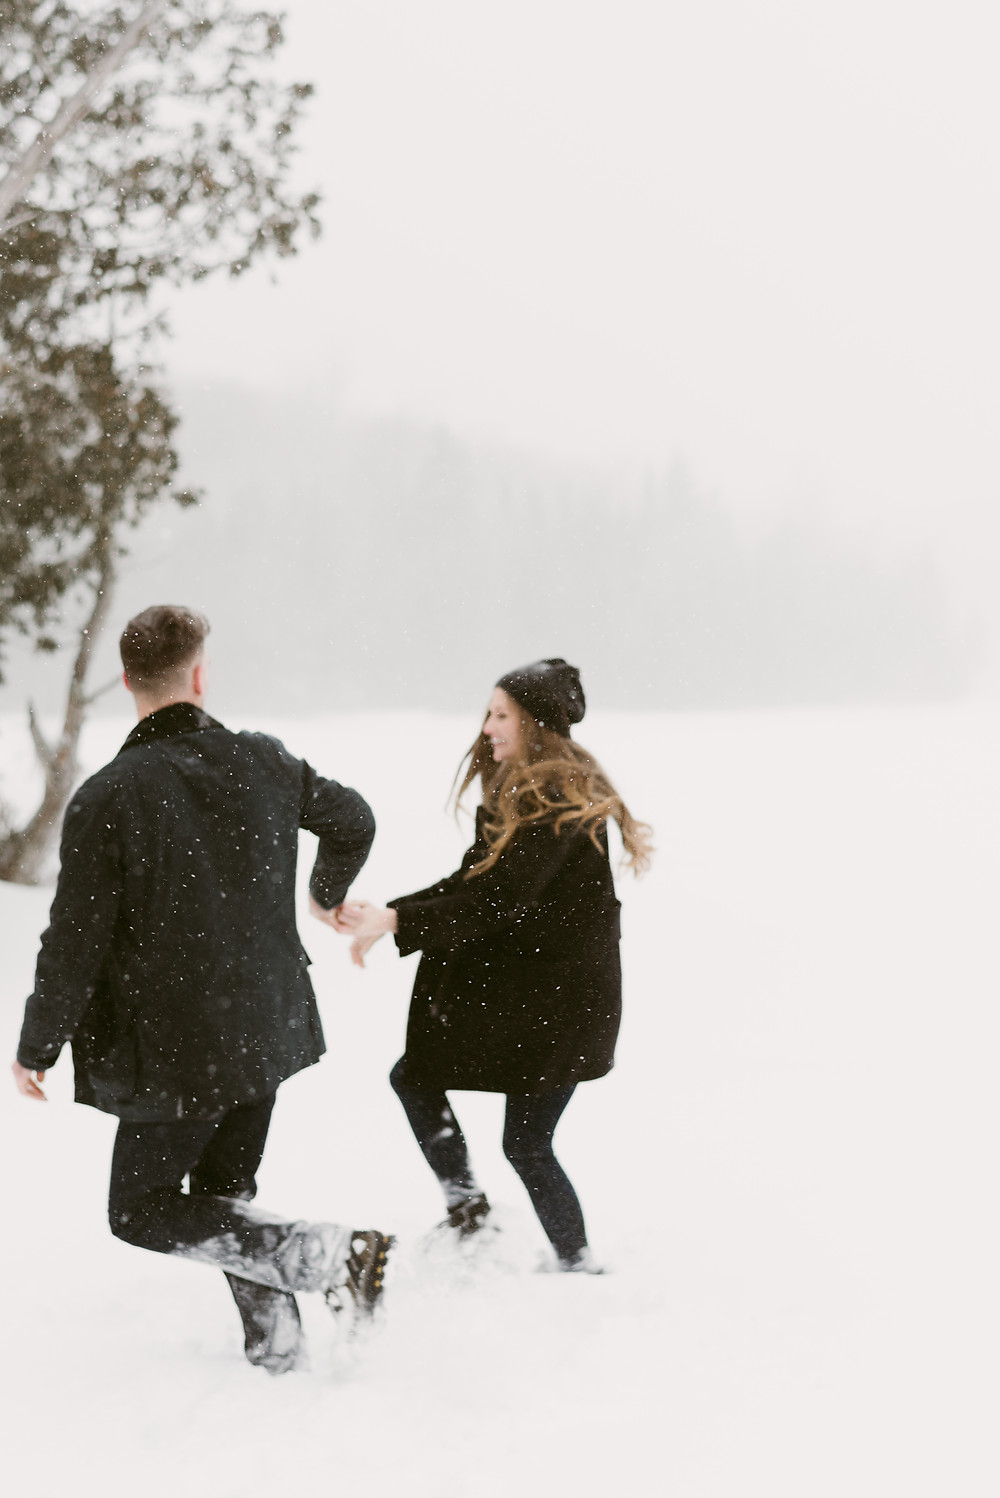 Winter engagement photos in the snow